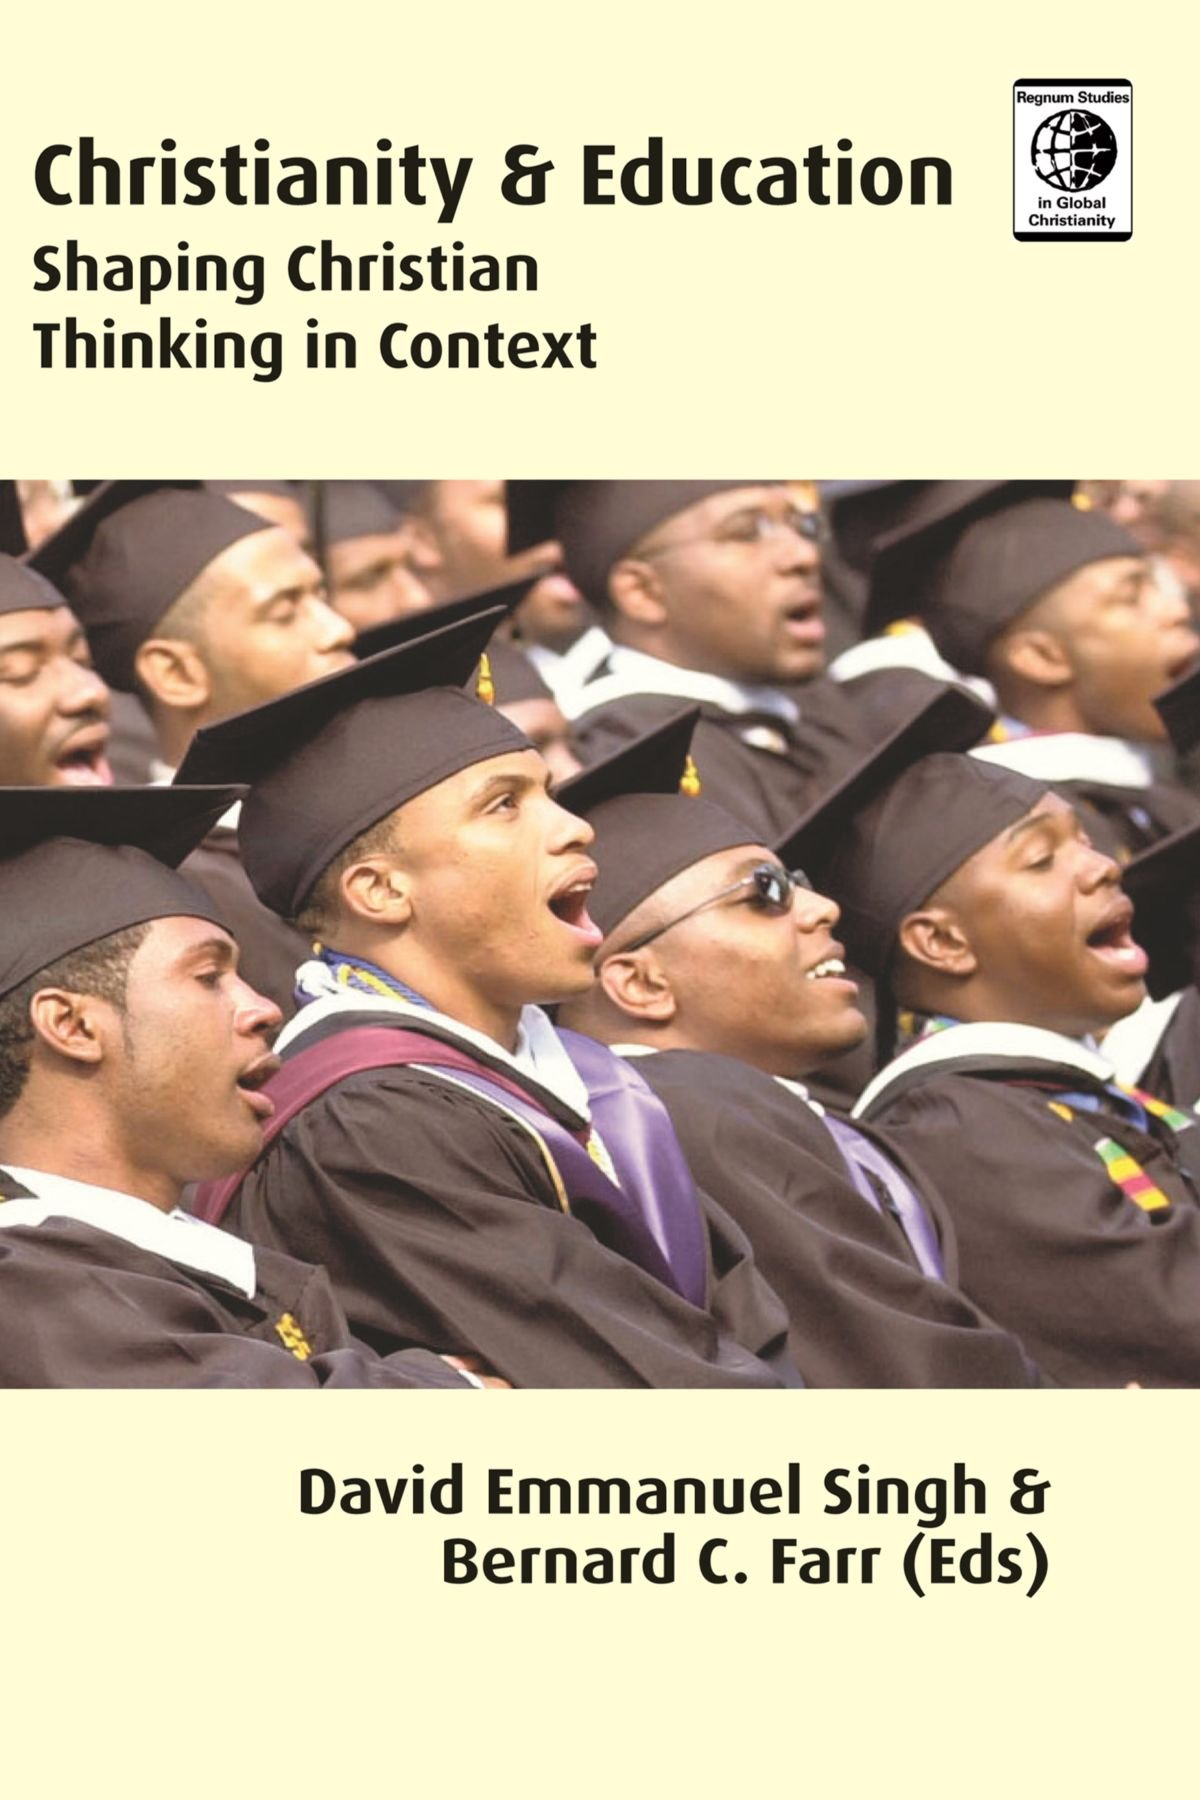 Christianity and Education: Shaping Christian Thinking in Context (Regnum Studies in Global Christianity)